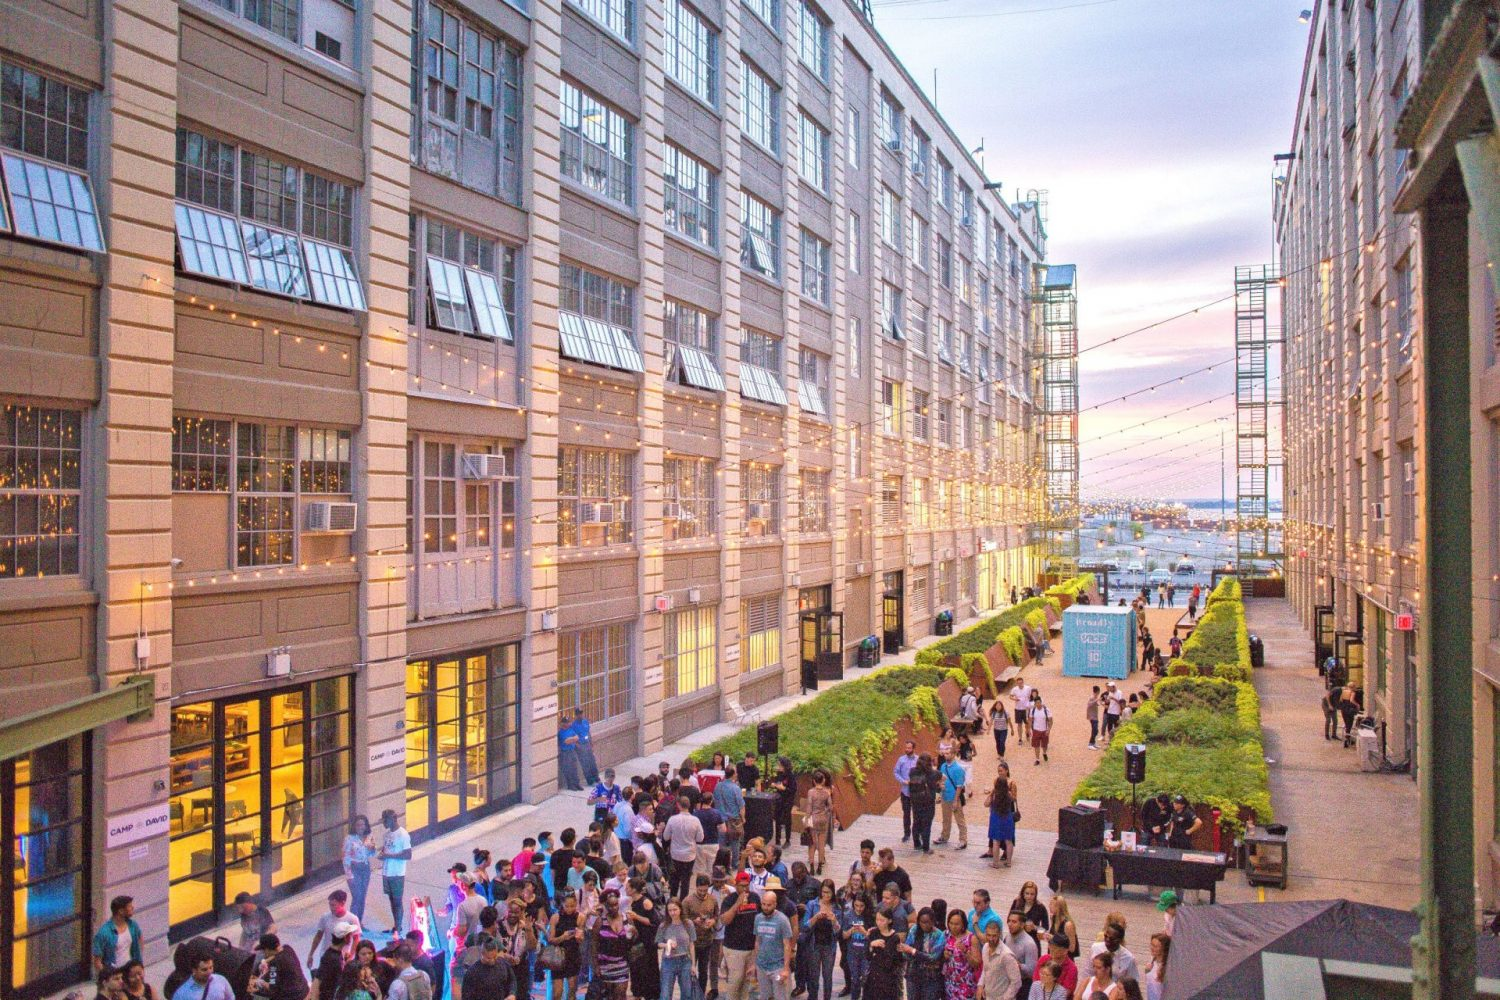 WantedDesign Brooklyn Event Guide wanteddesign brooklyn event guide WANTEDDESIGN BROOKLYN 2019 EVENT GUIDE IndustryCItycourtyard